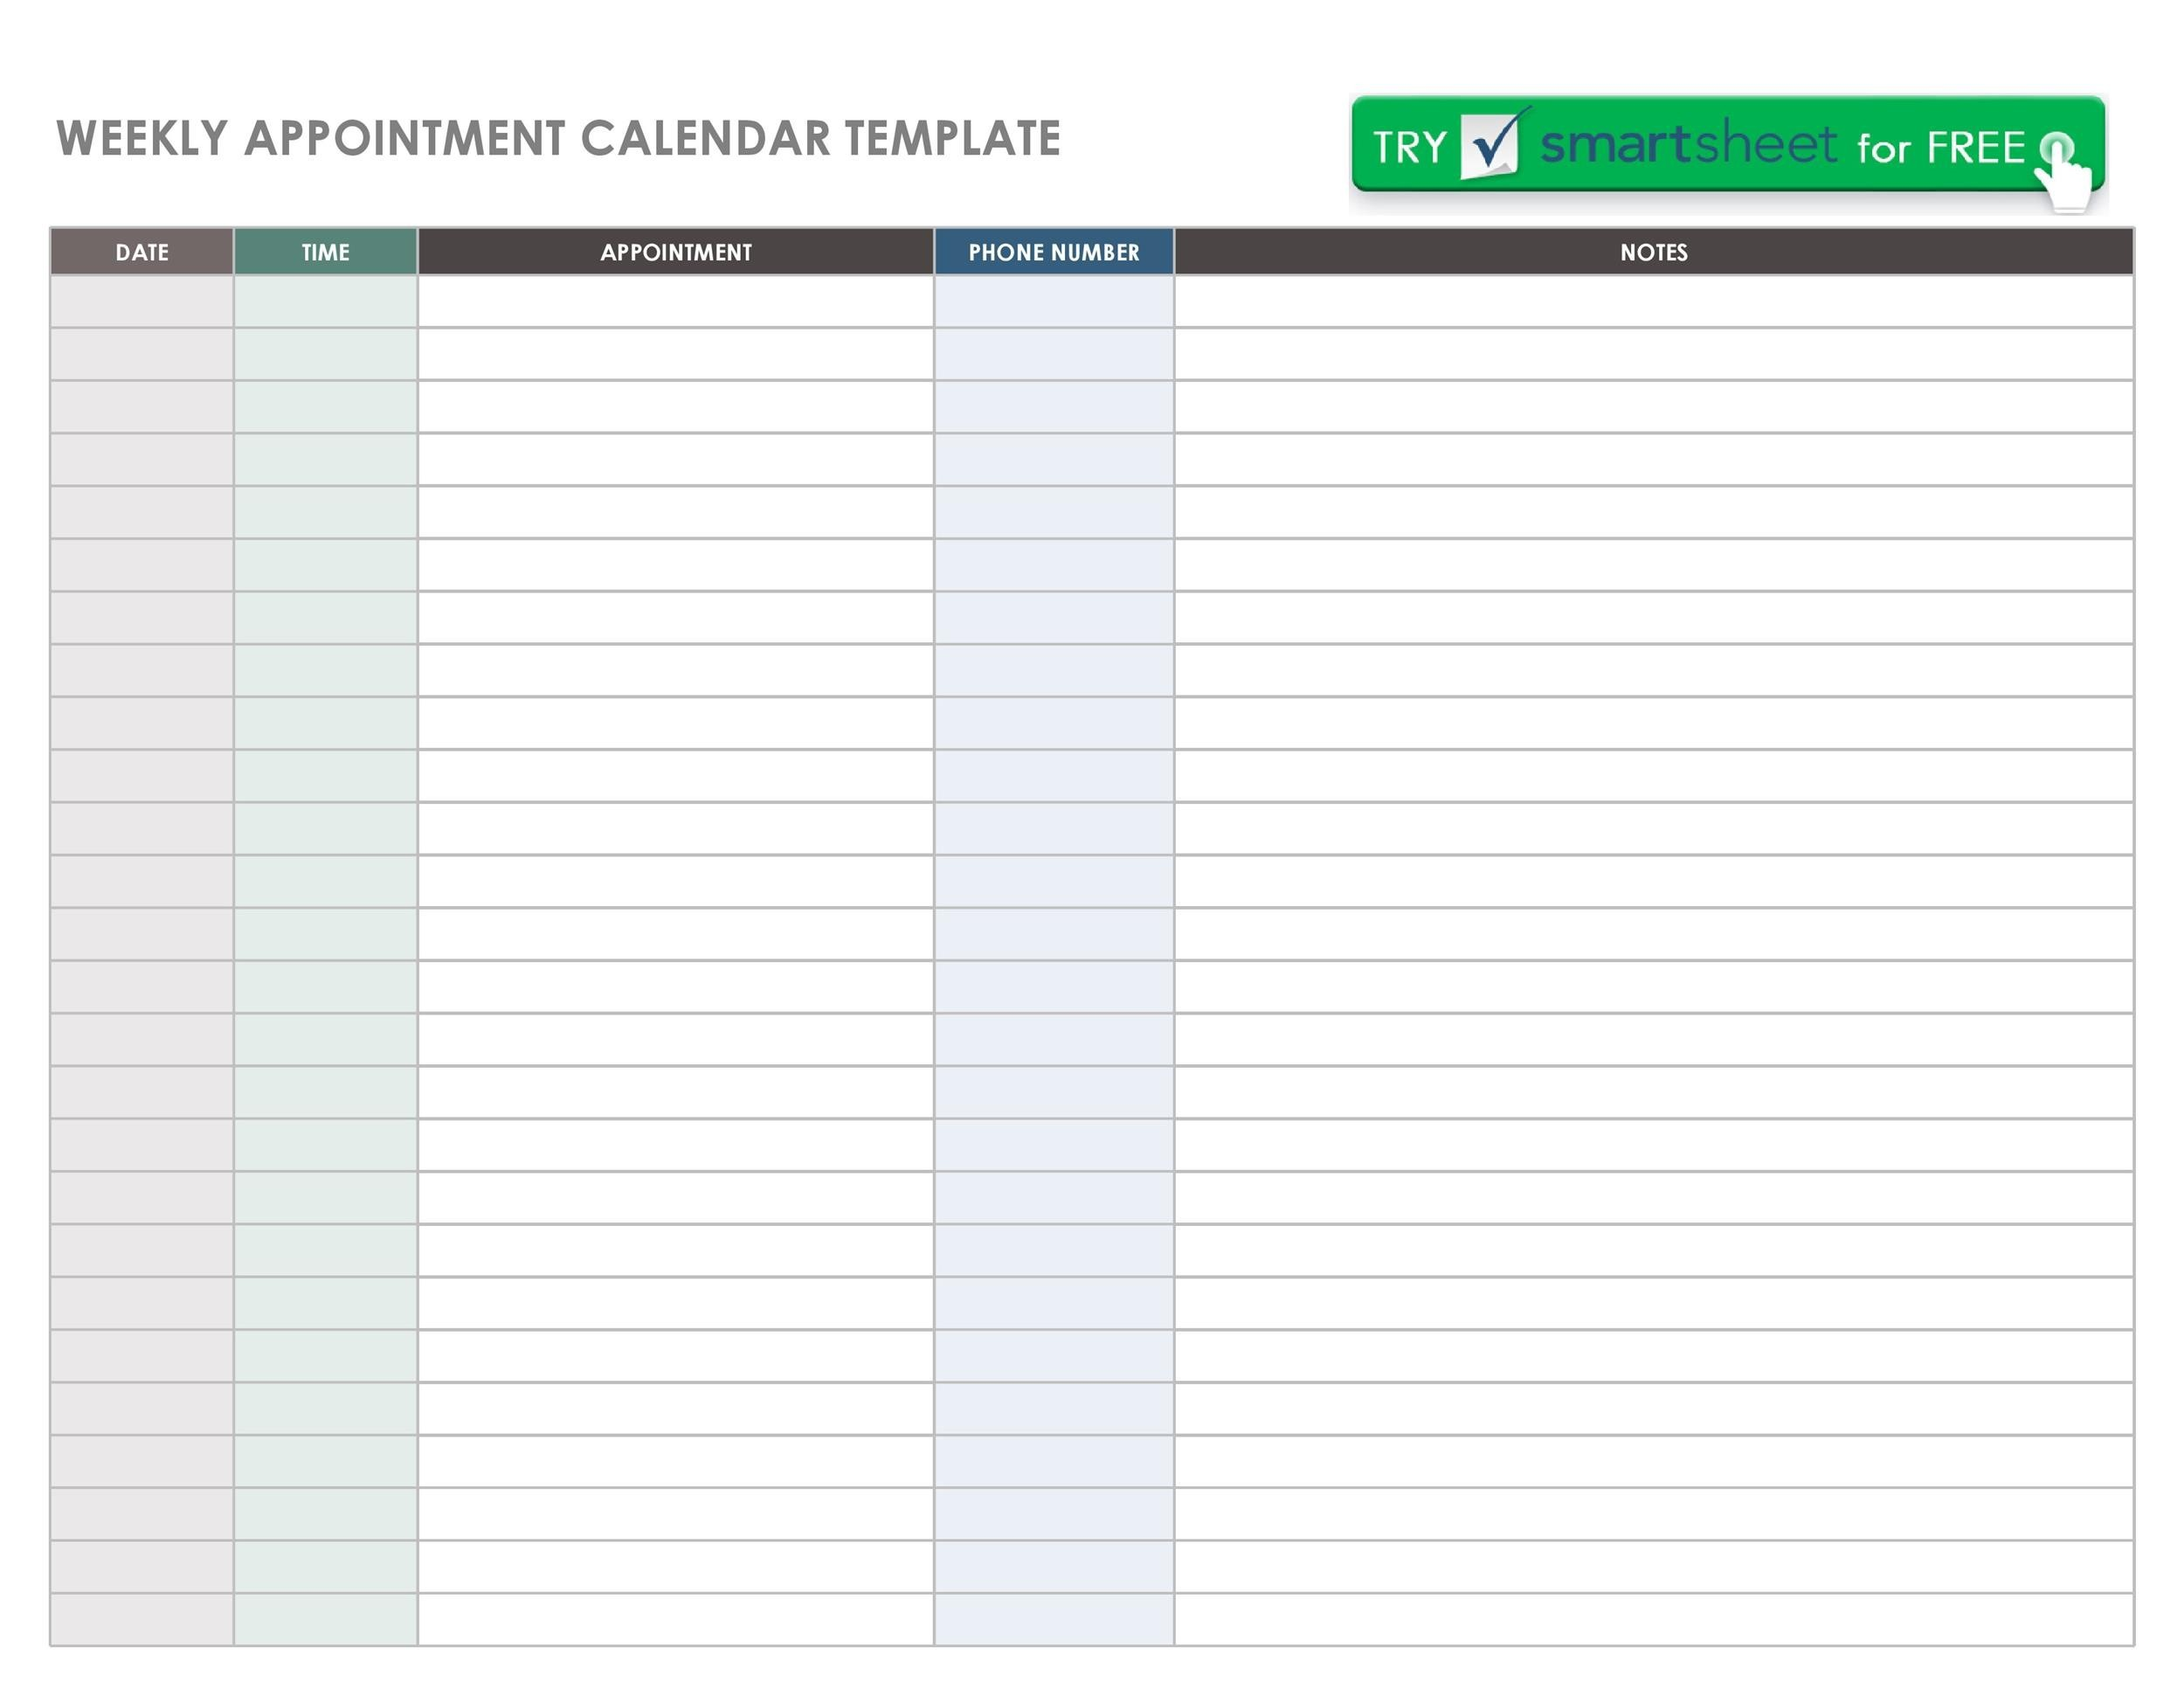 Free appointment schedule template 30